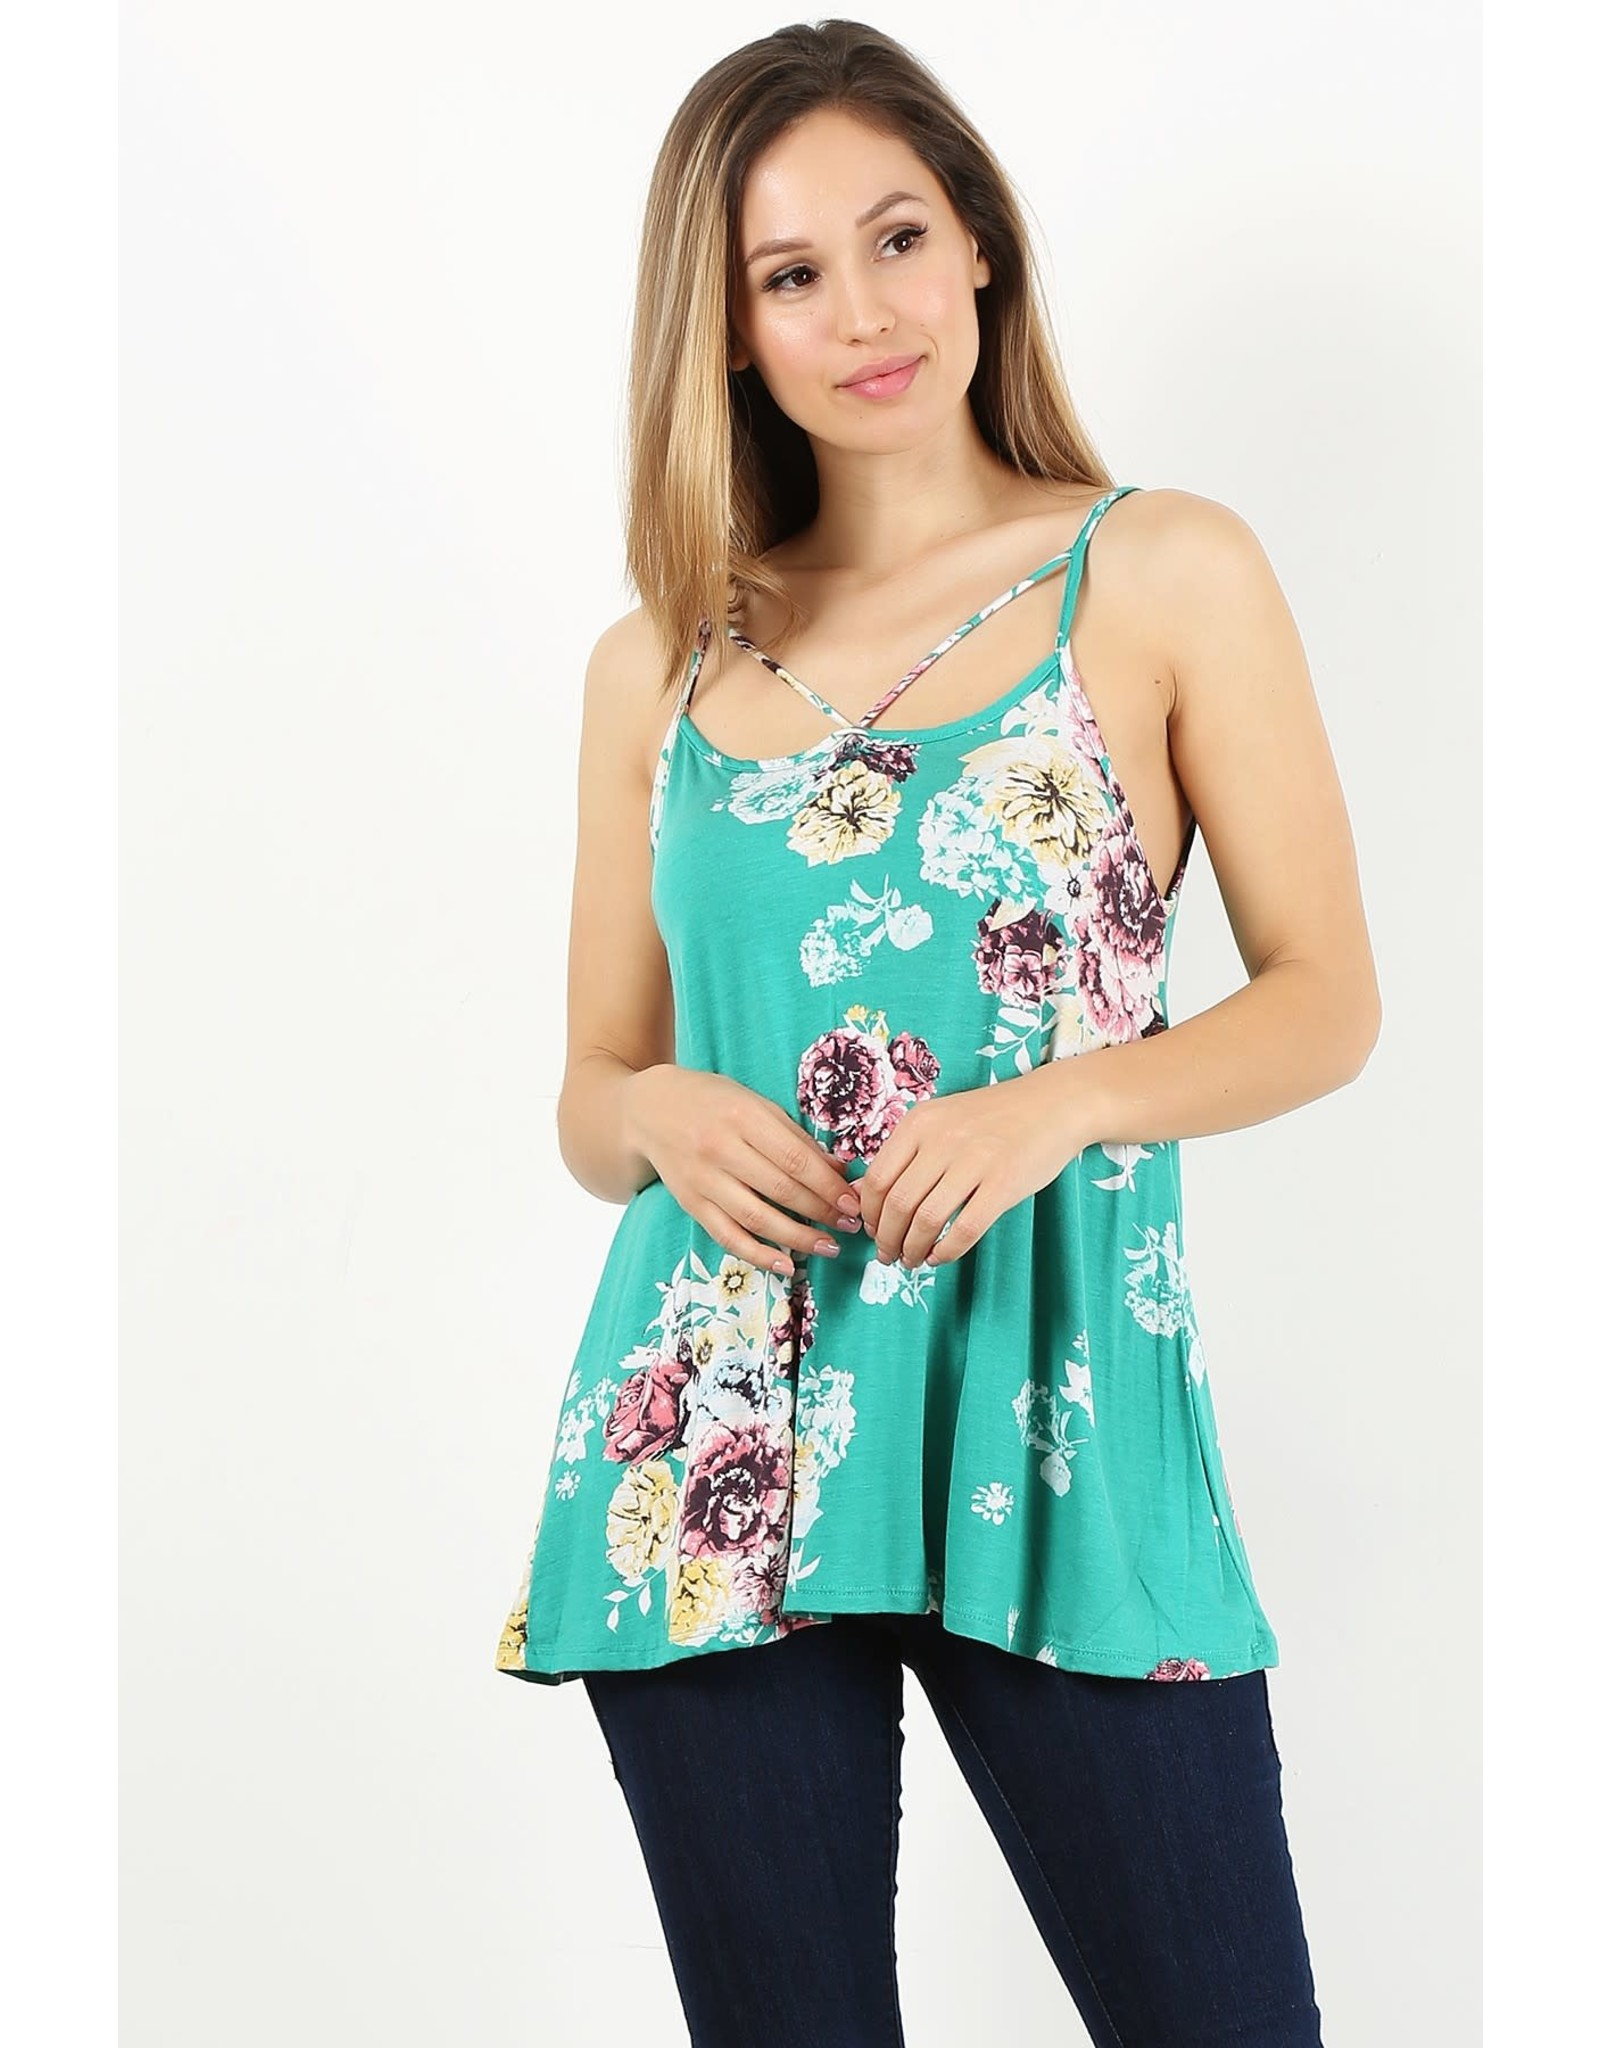 MINT FLORAL PRINT SLEEVELESS TOP WITH LOW BACK